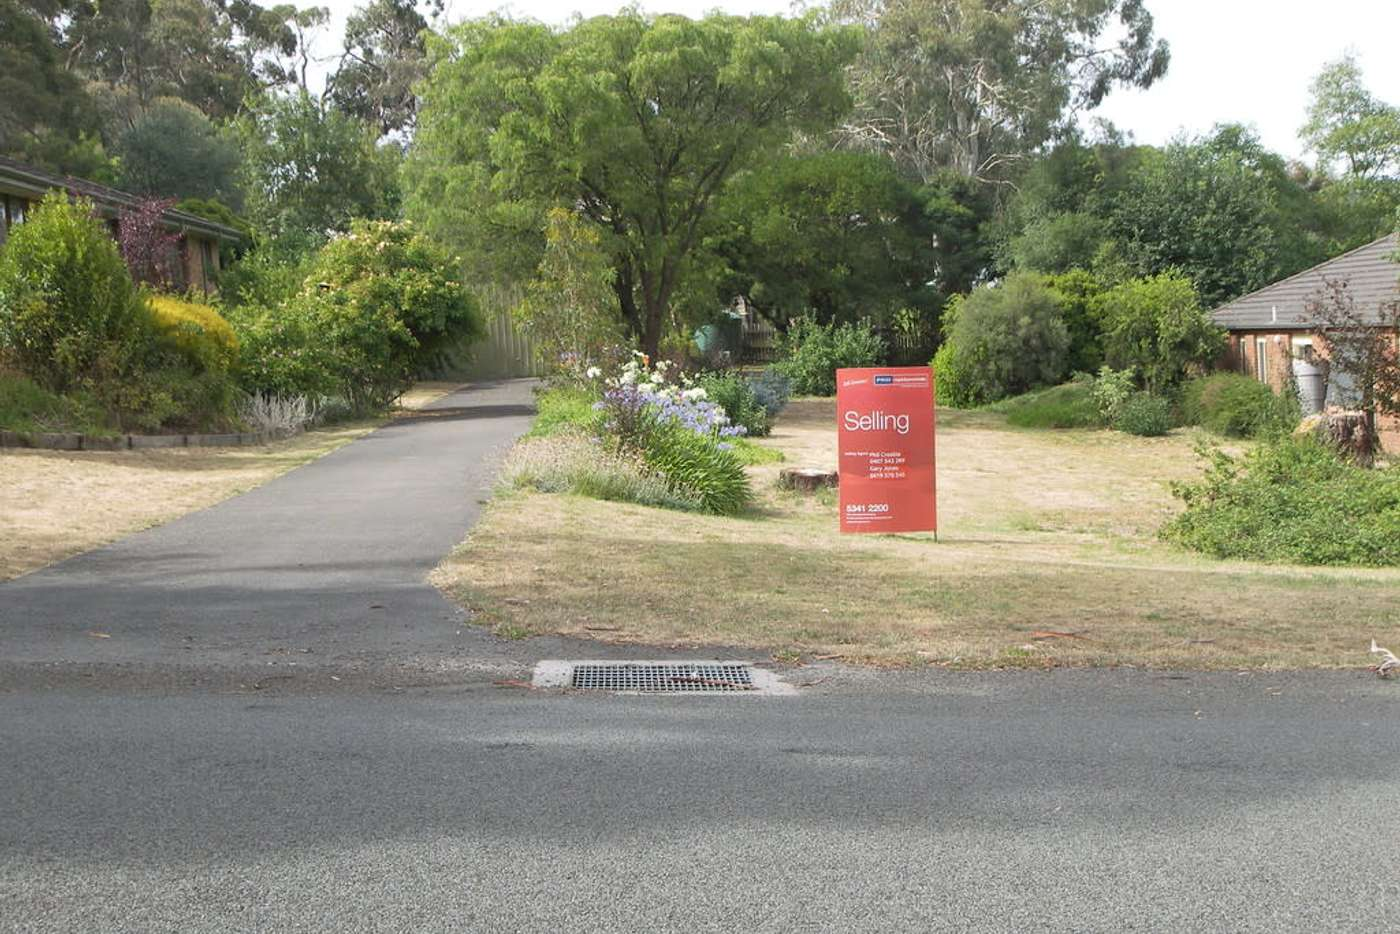 Main view of Homely residentialLand listing, 508 Simpson Street, Buninyong VIC 3357